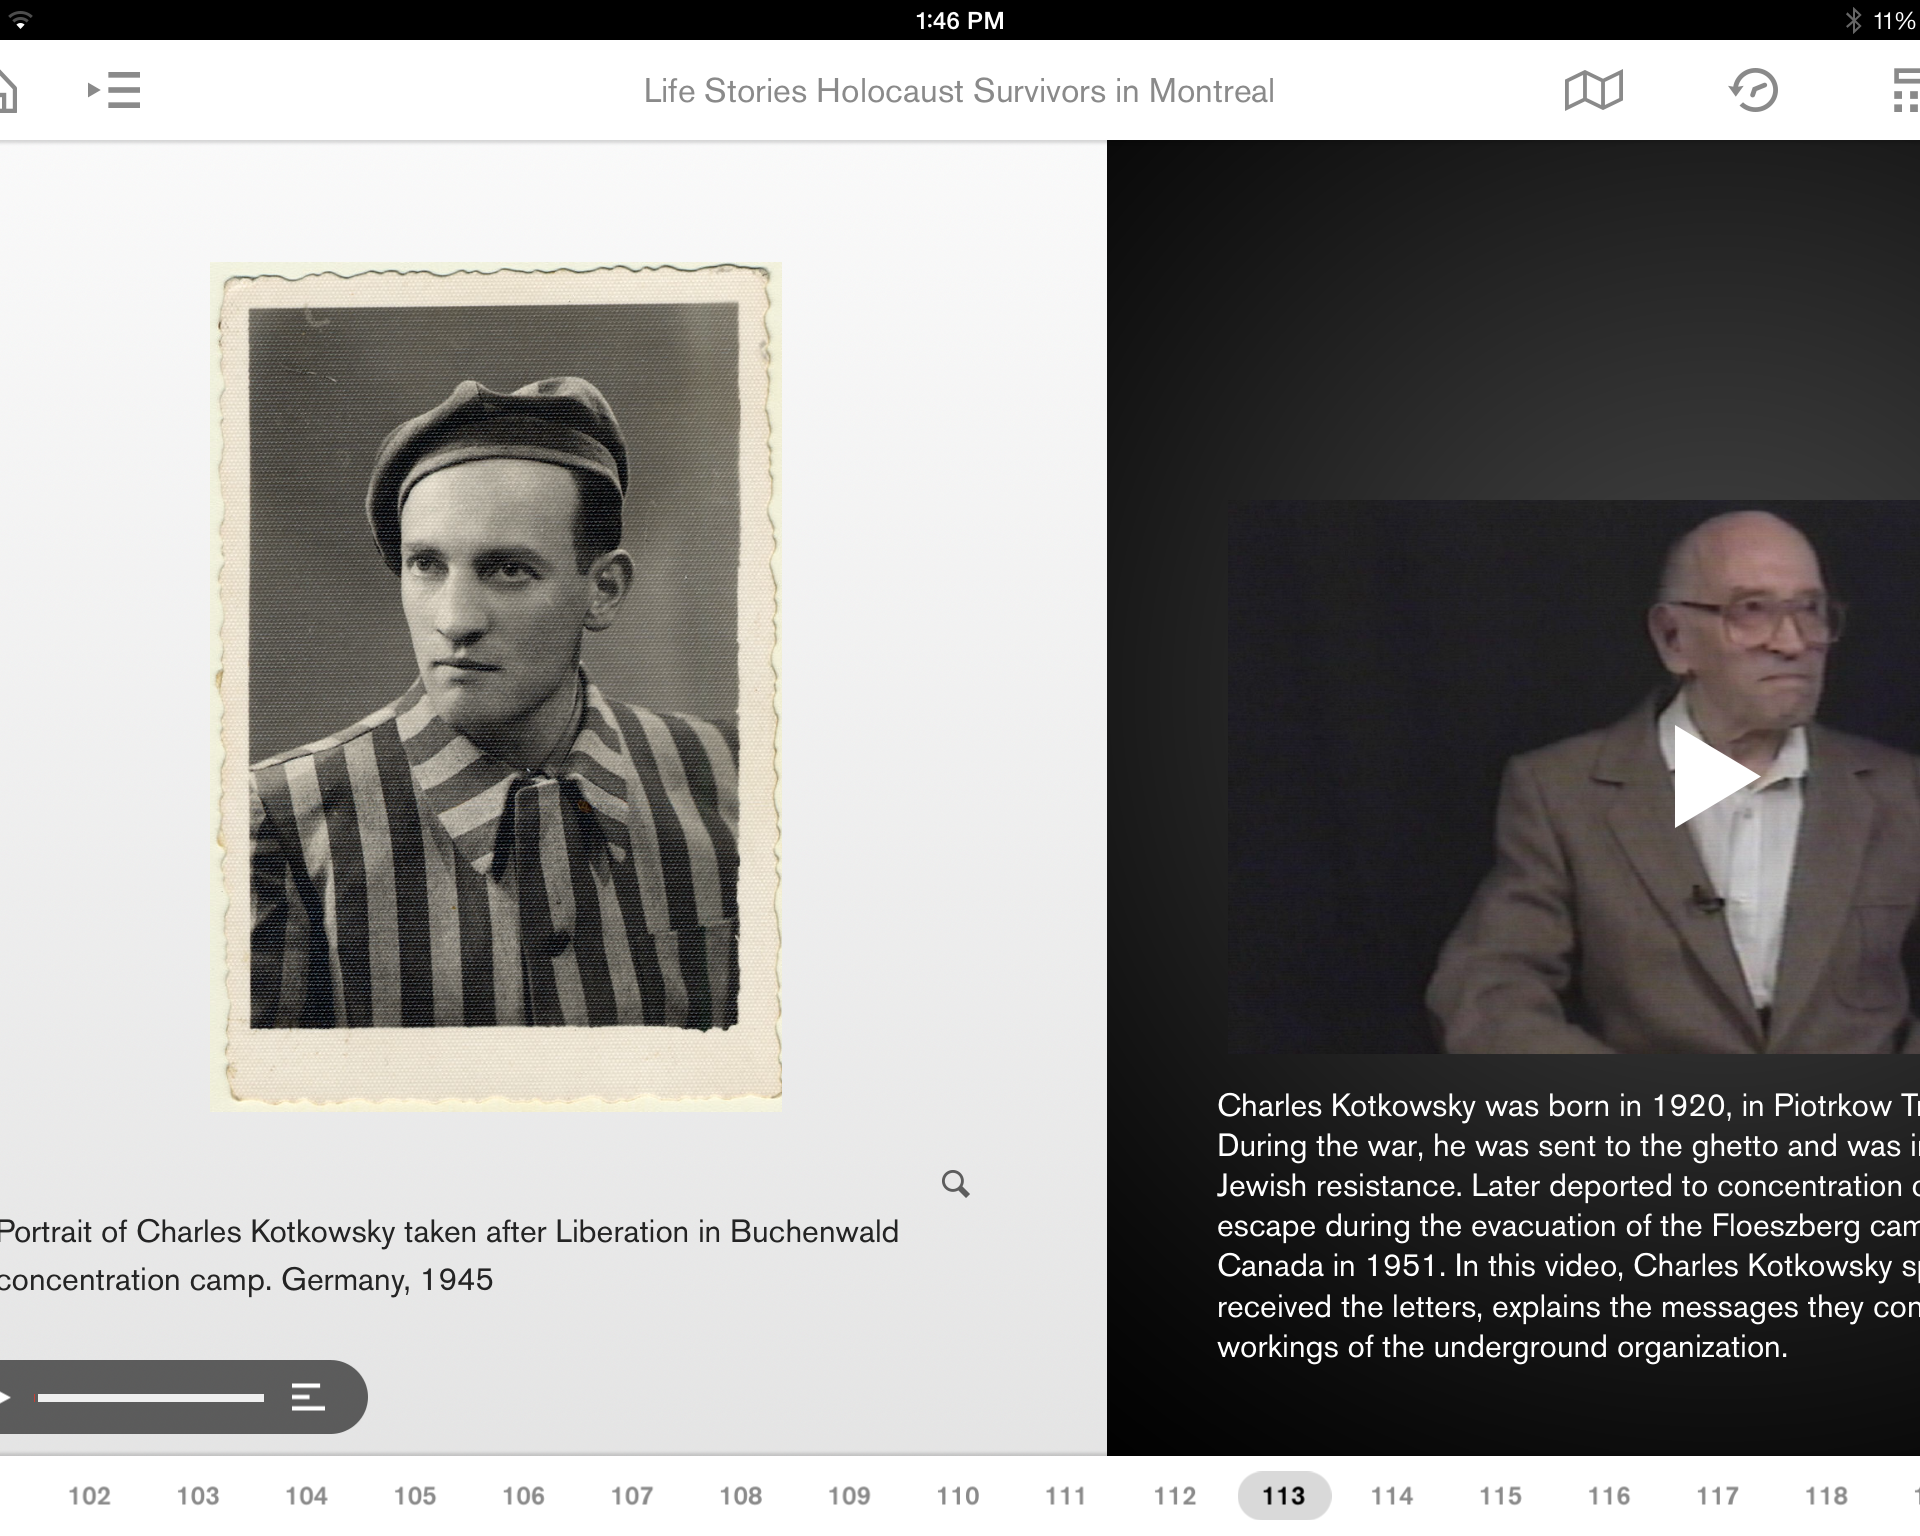 Find more survivors' testimonies in the Montreal Holocaust Museum's app.